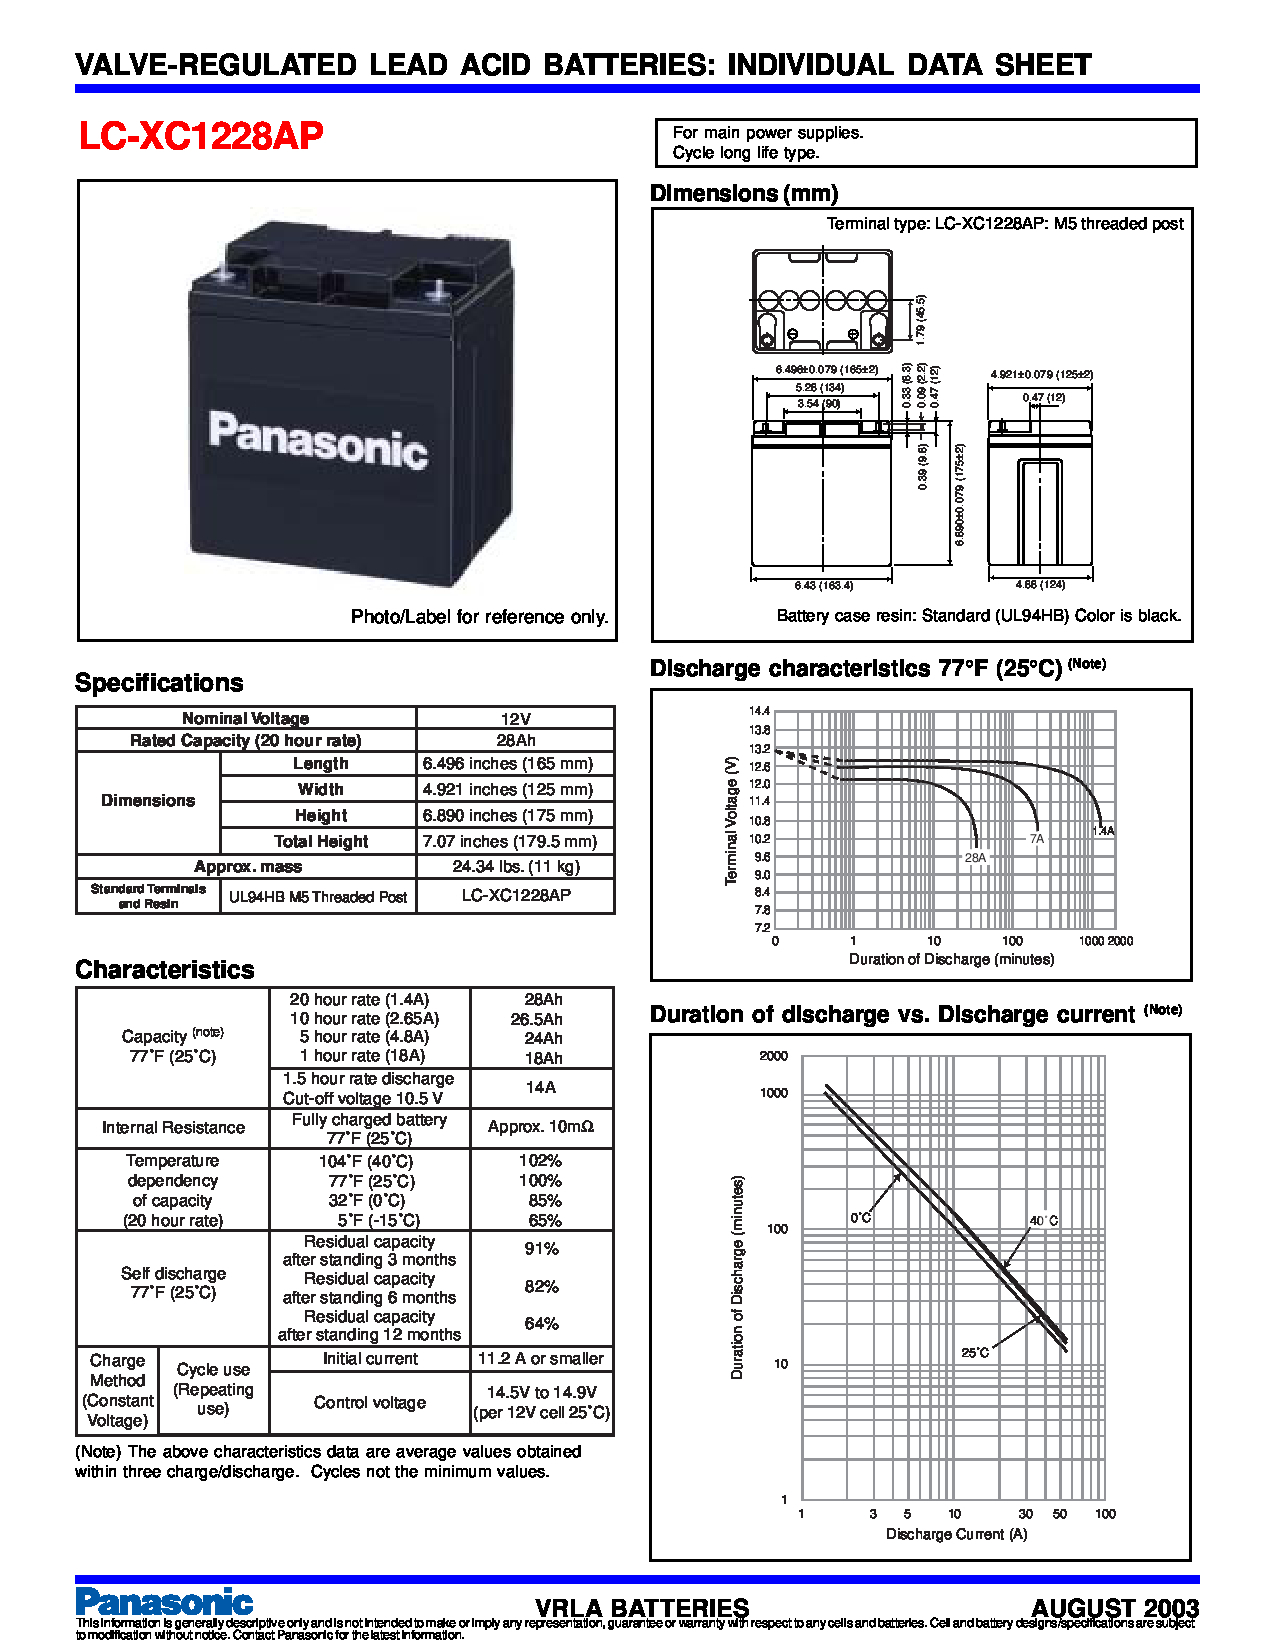 Panasonic LC-XC1228AP Manual